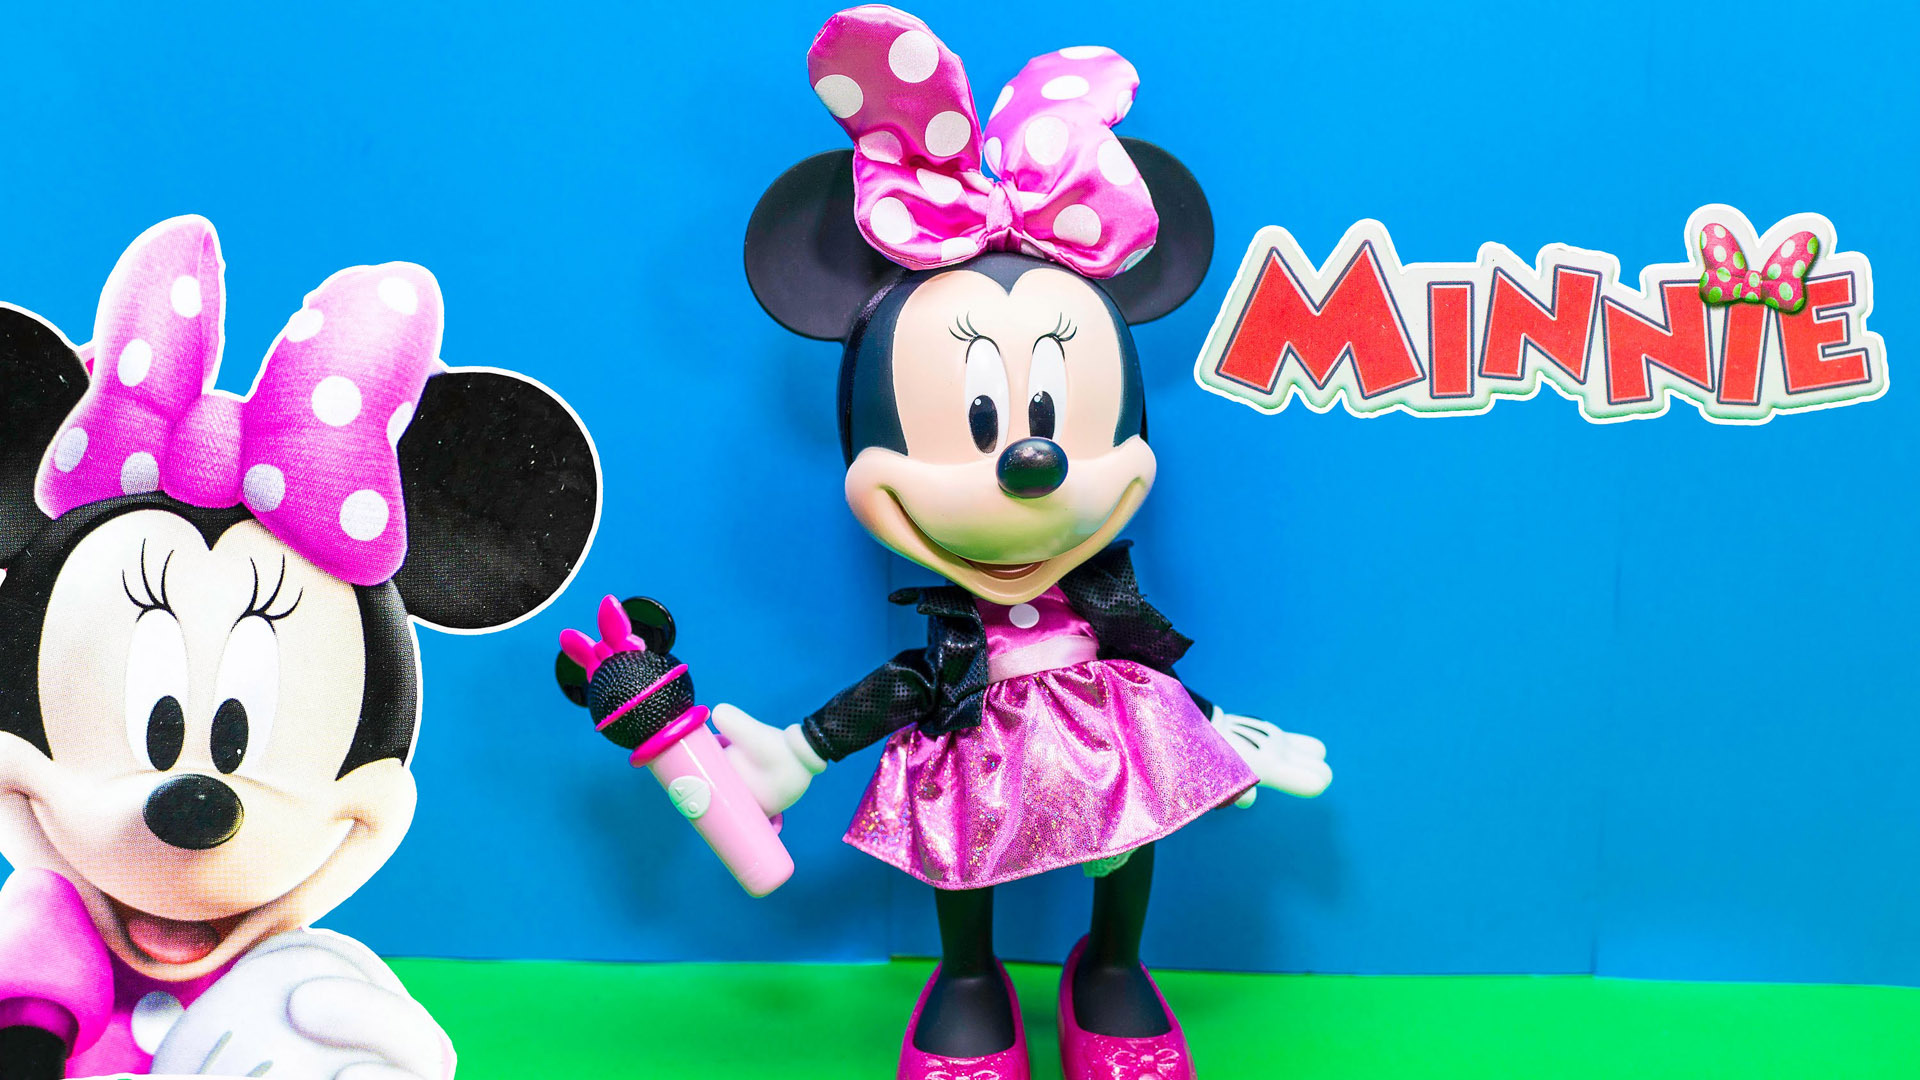 Minnie Mouse High Definition Wallpapers